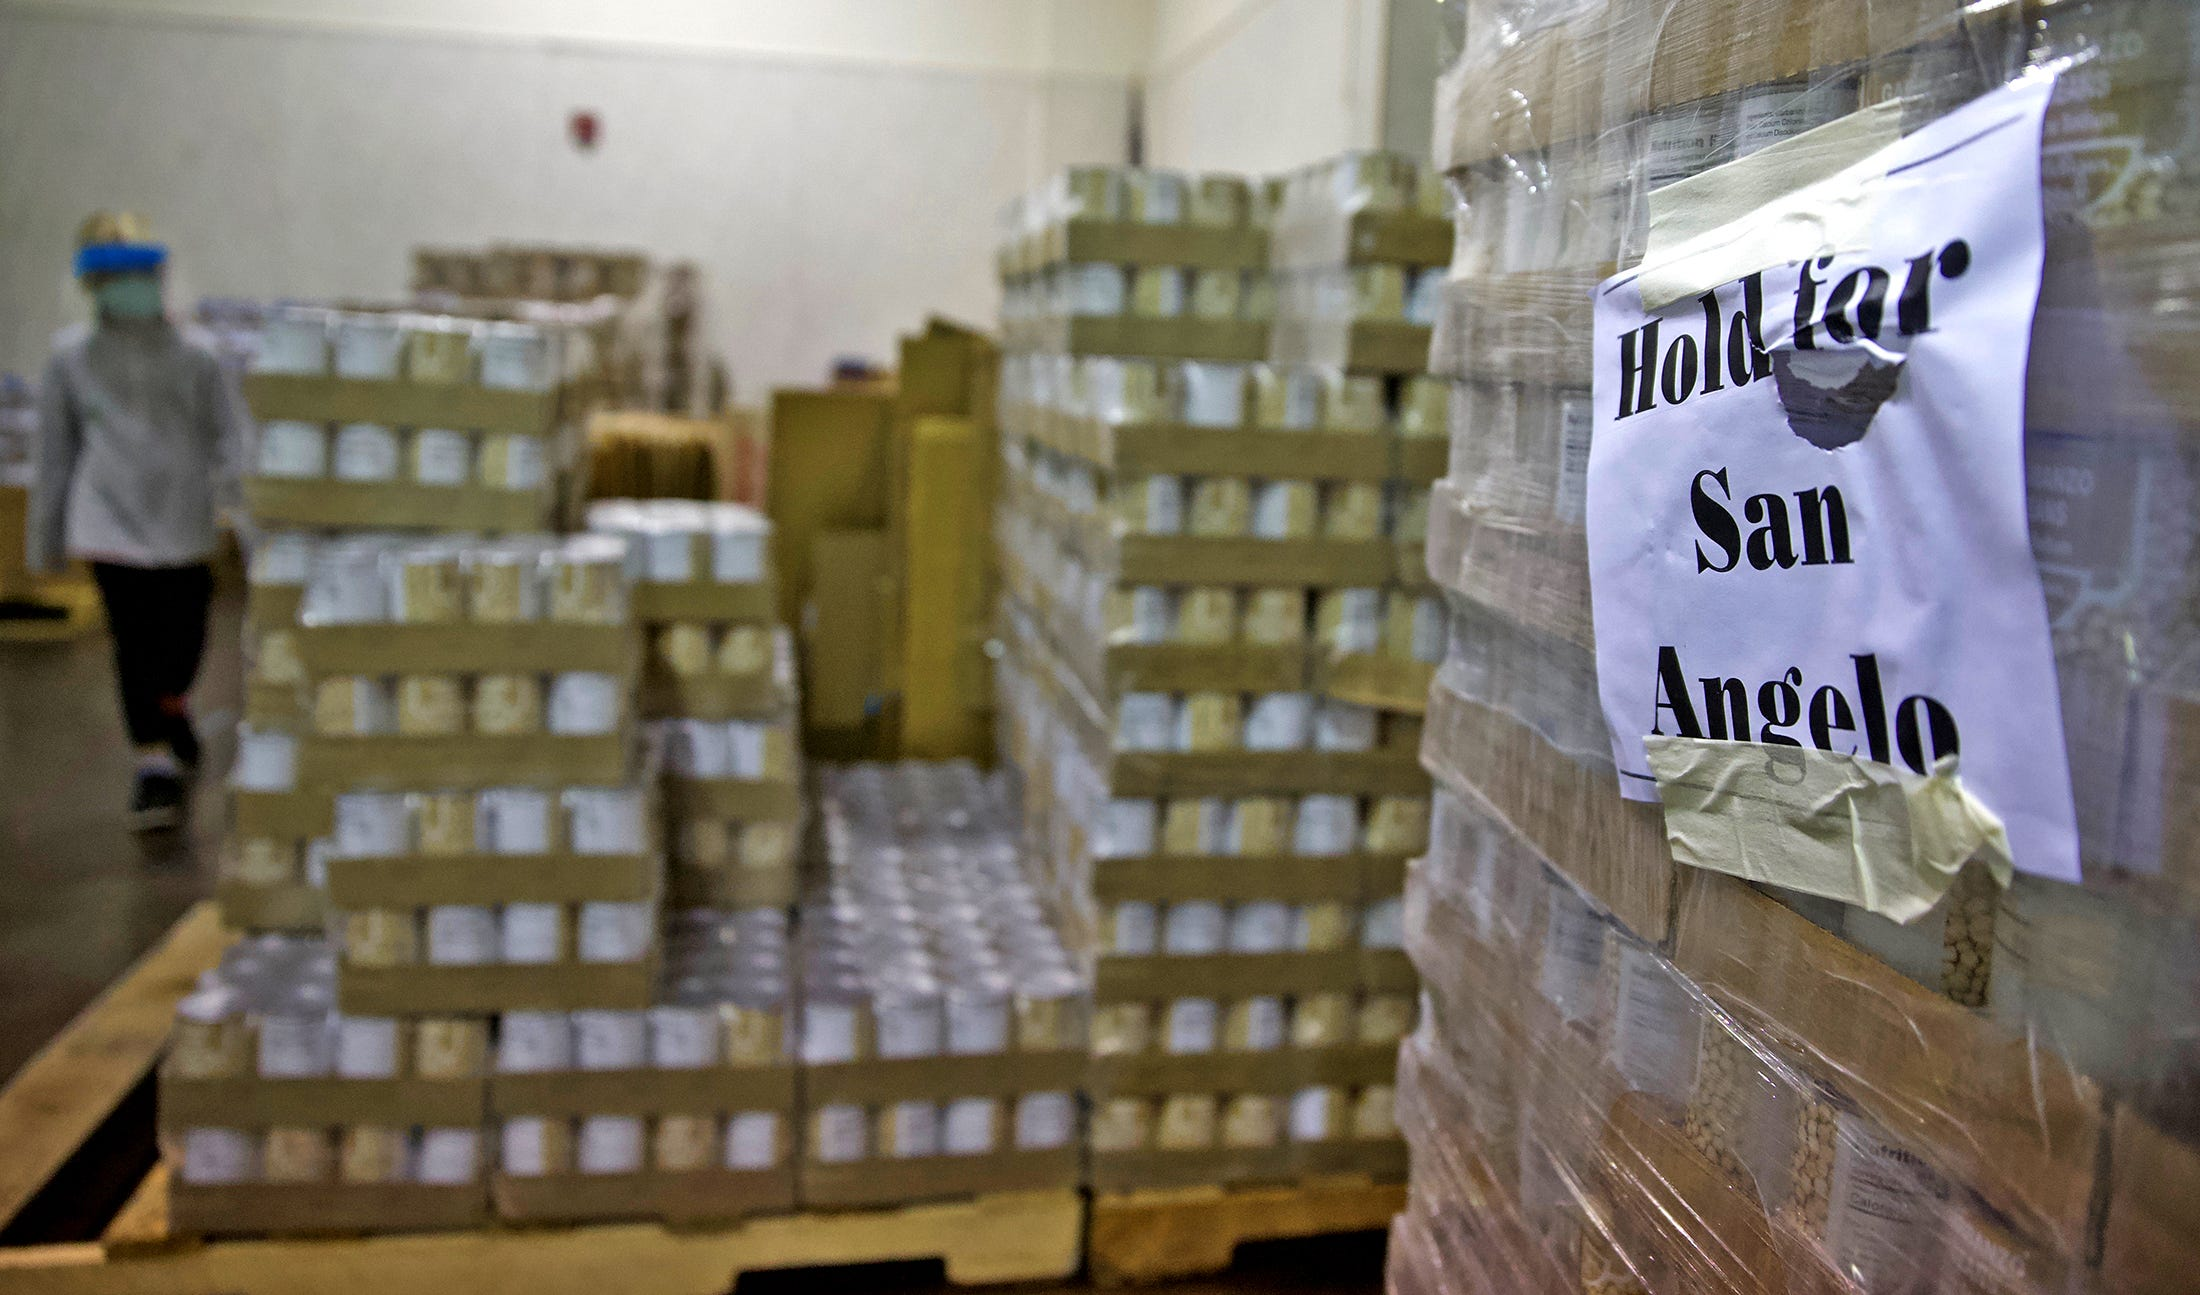 Canned goods sit stacked on pallets during a food distribution event at the St. Paul Presbyterian Church on Saturday, Nov. 21, 2020.